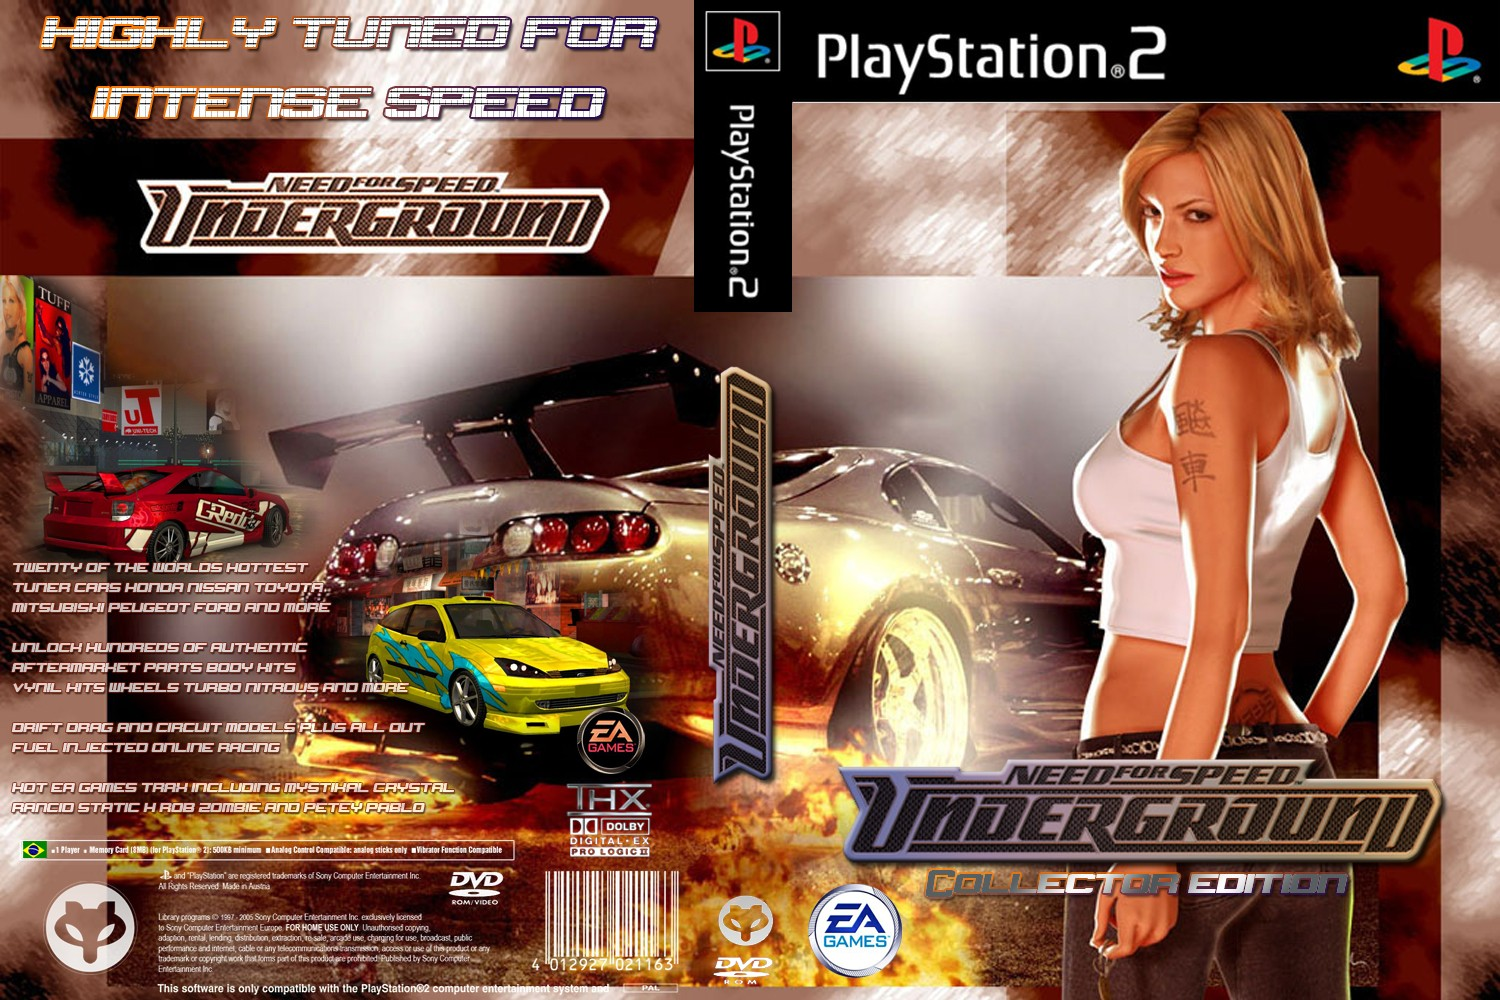 Nfs underground 2 rachel nackt softcore video